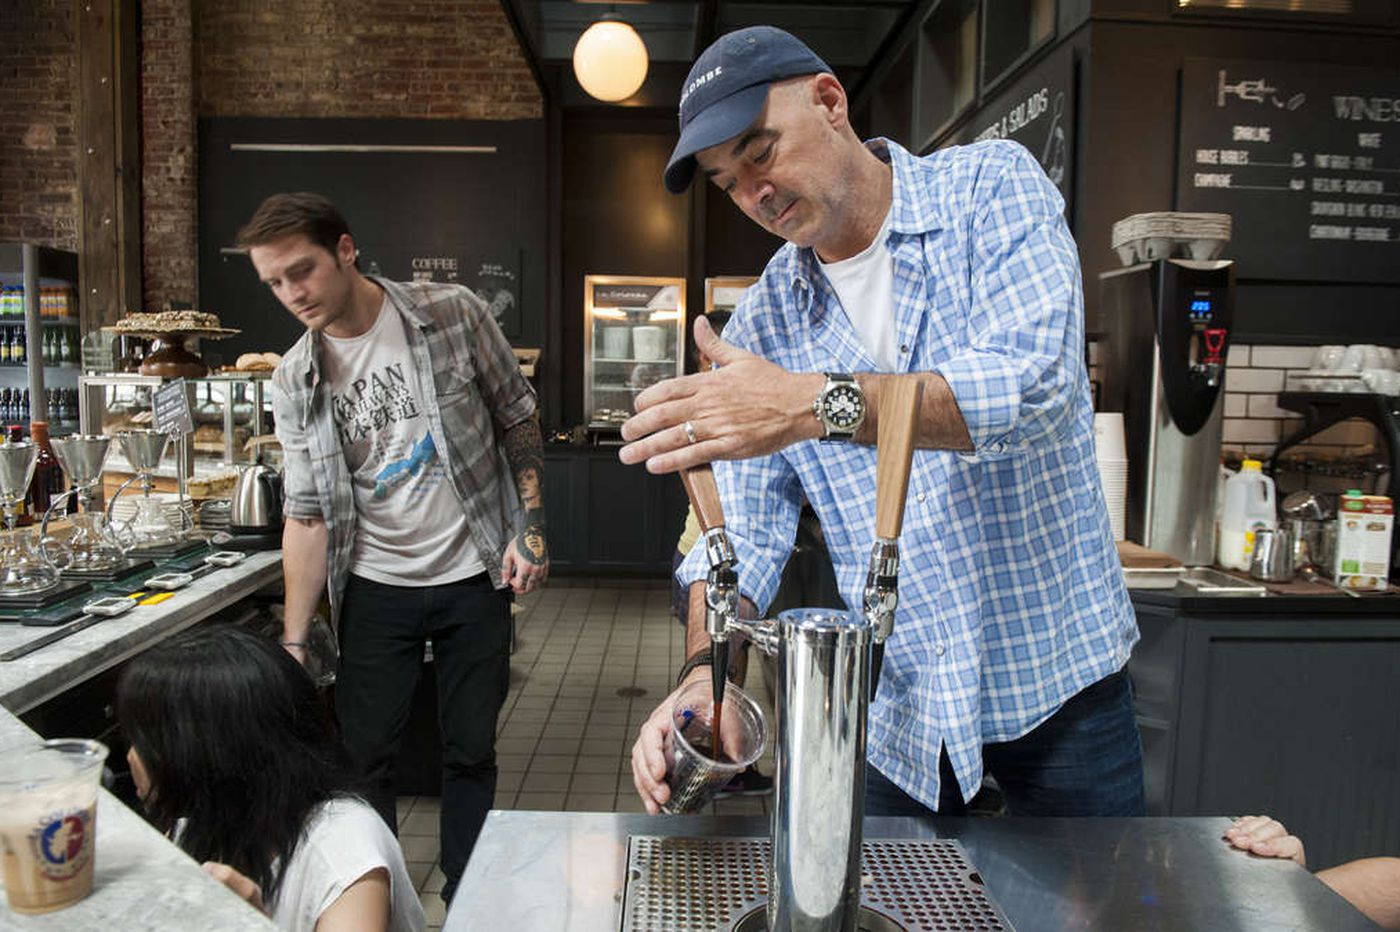 Philly's La Colombe offered free coffee Friday as it launched its first ad campaign